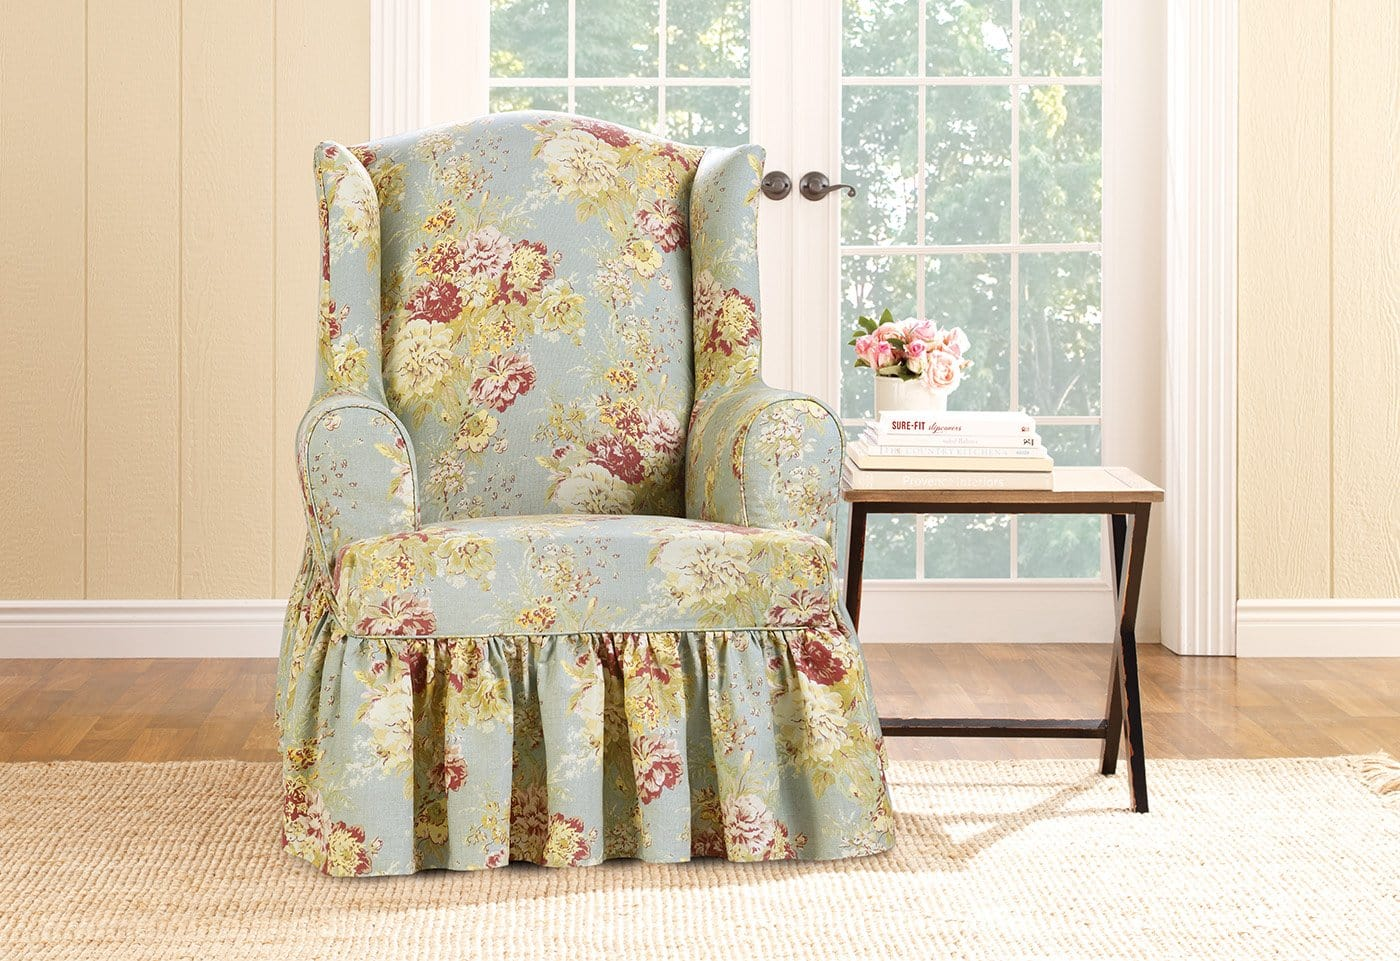 Ballad Bouquet By Waverly One Piece Wing Chair Slipcover Ruffled Skirt 100% Cotton Machine Washable - Wing Chair / T-Cushion / Robins Egg